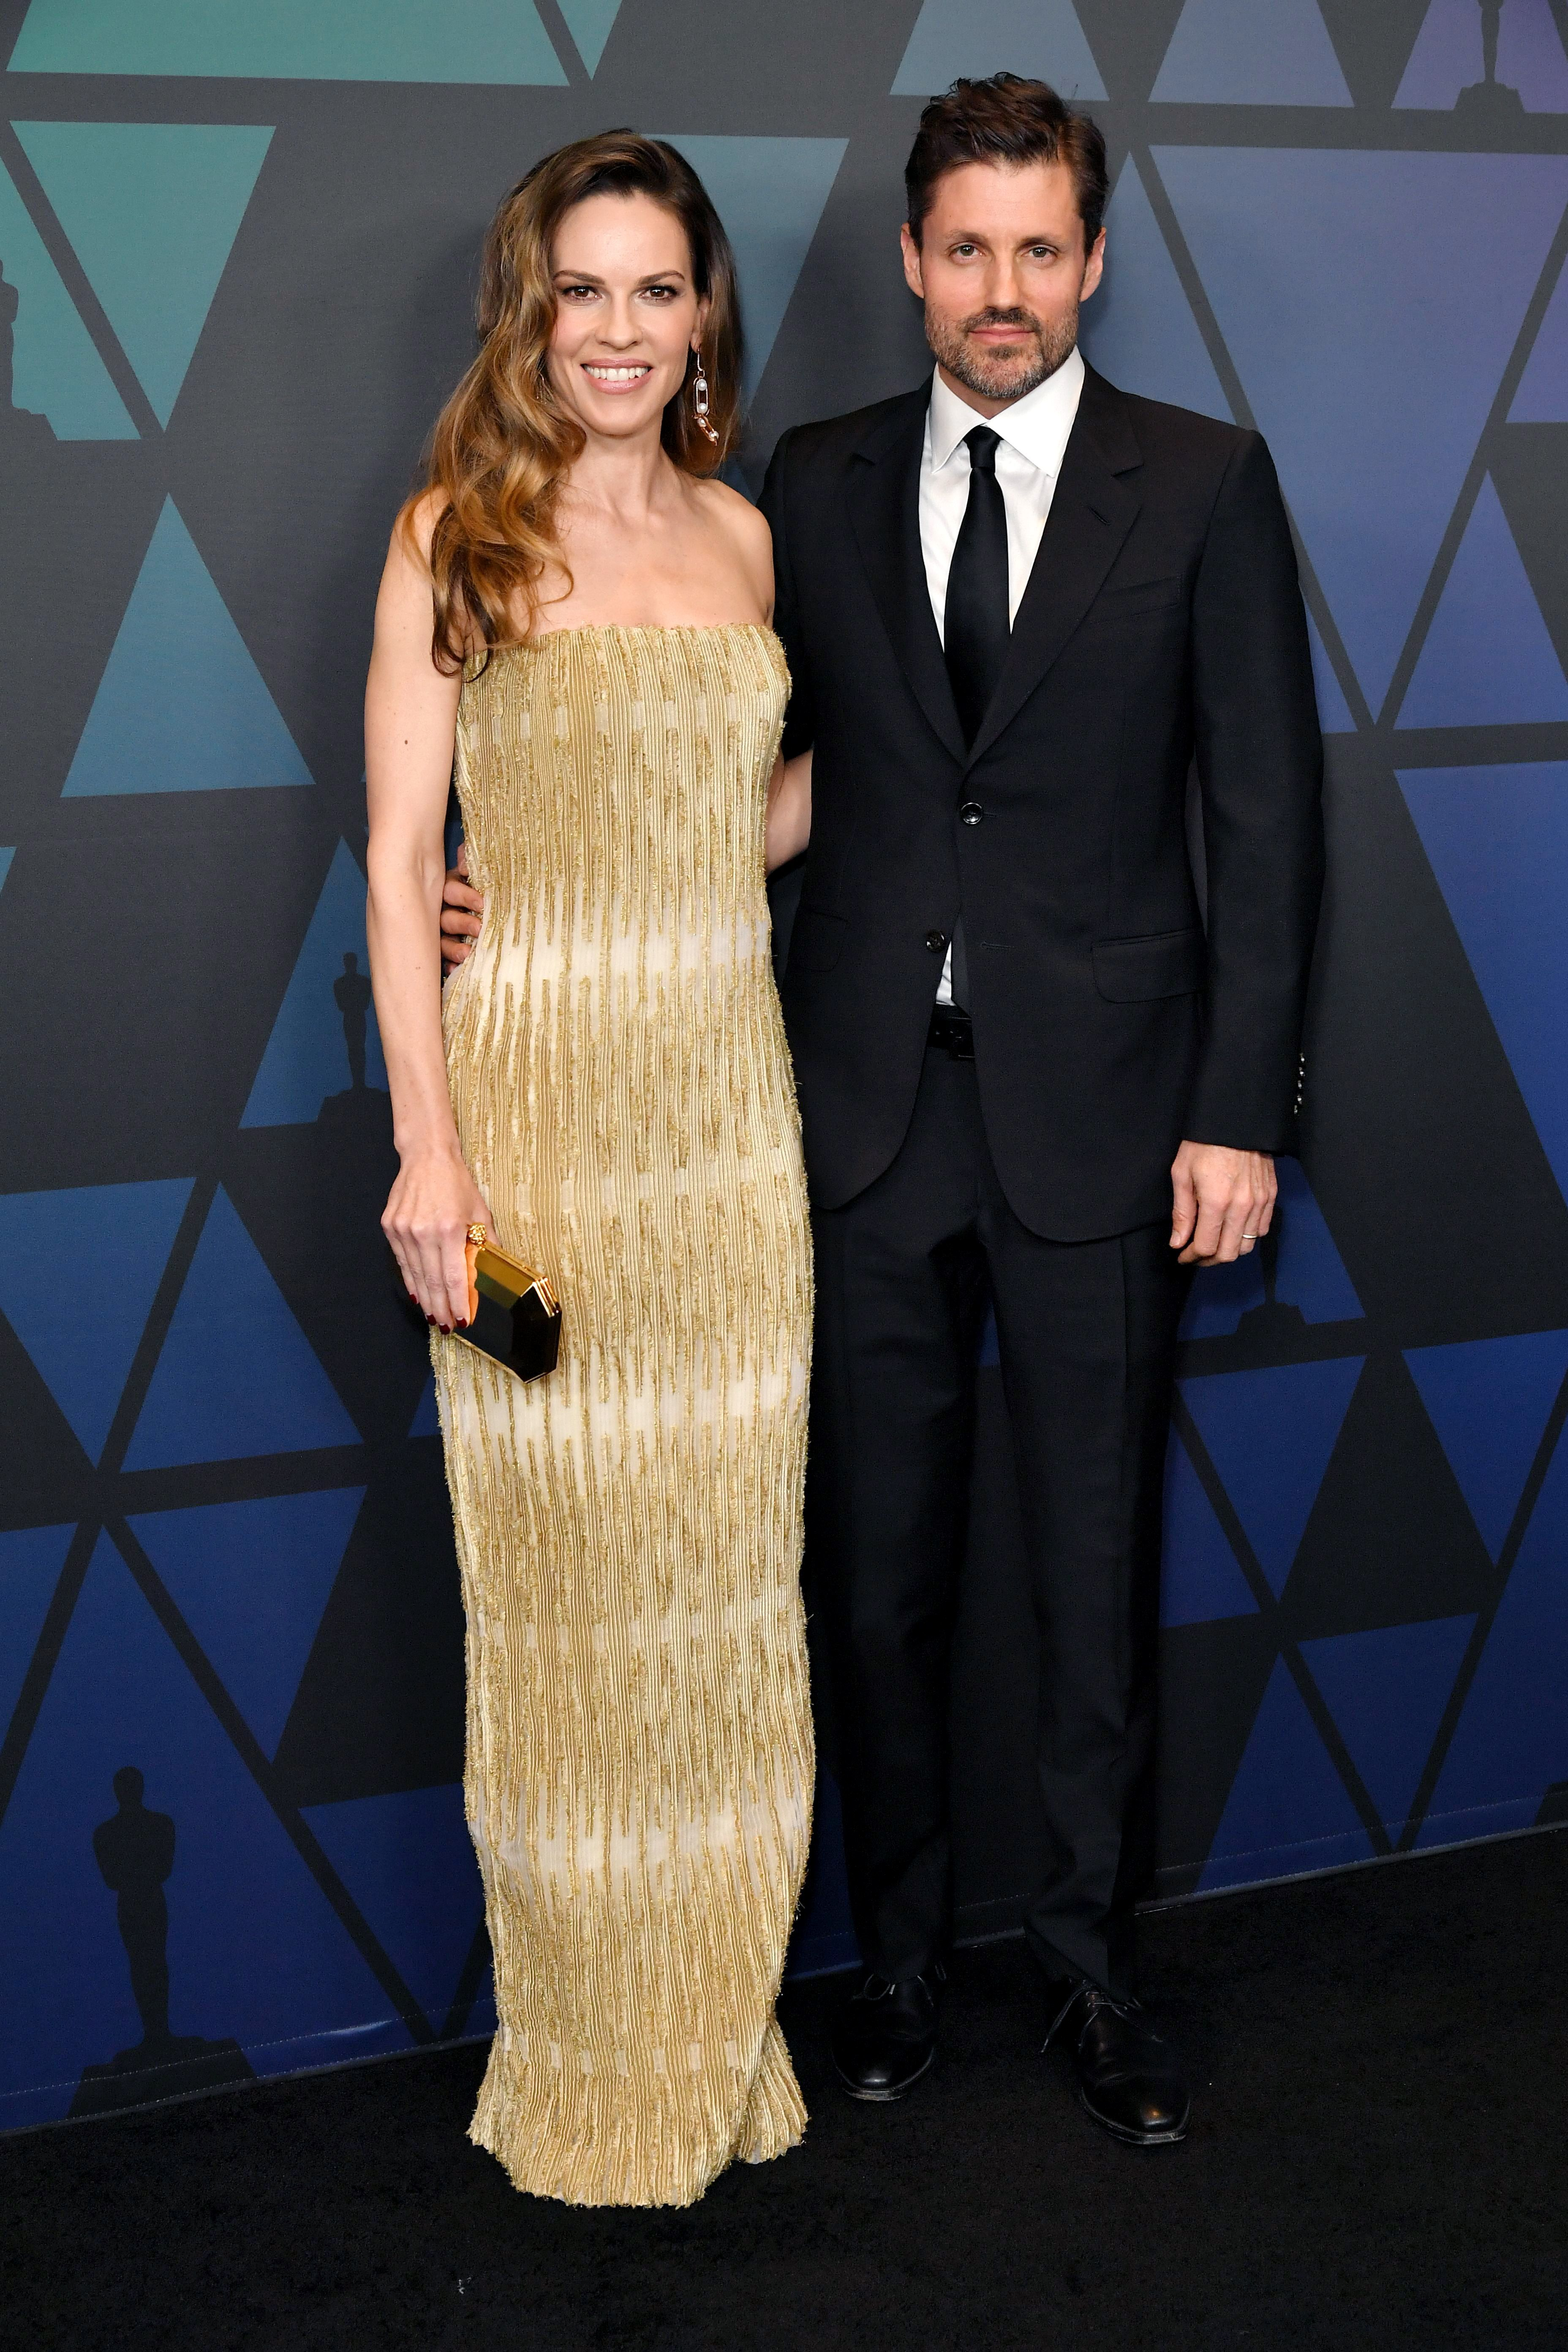 Hilary Swank and husband Philip Schneider attend the Academy of Motion Picture Arts and Sciences' Governors Awards at the Ray Dolby Ballroom at the Hollywood & Highland Center in Hollywood on Nov. 18, 2018.